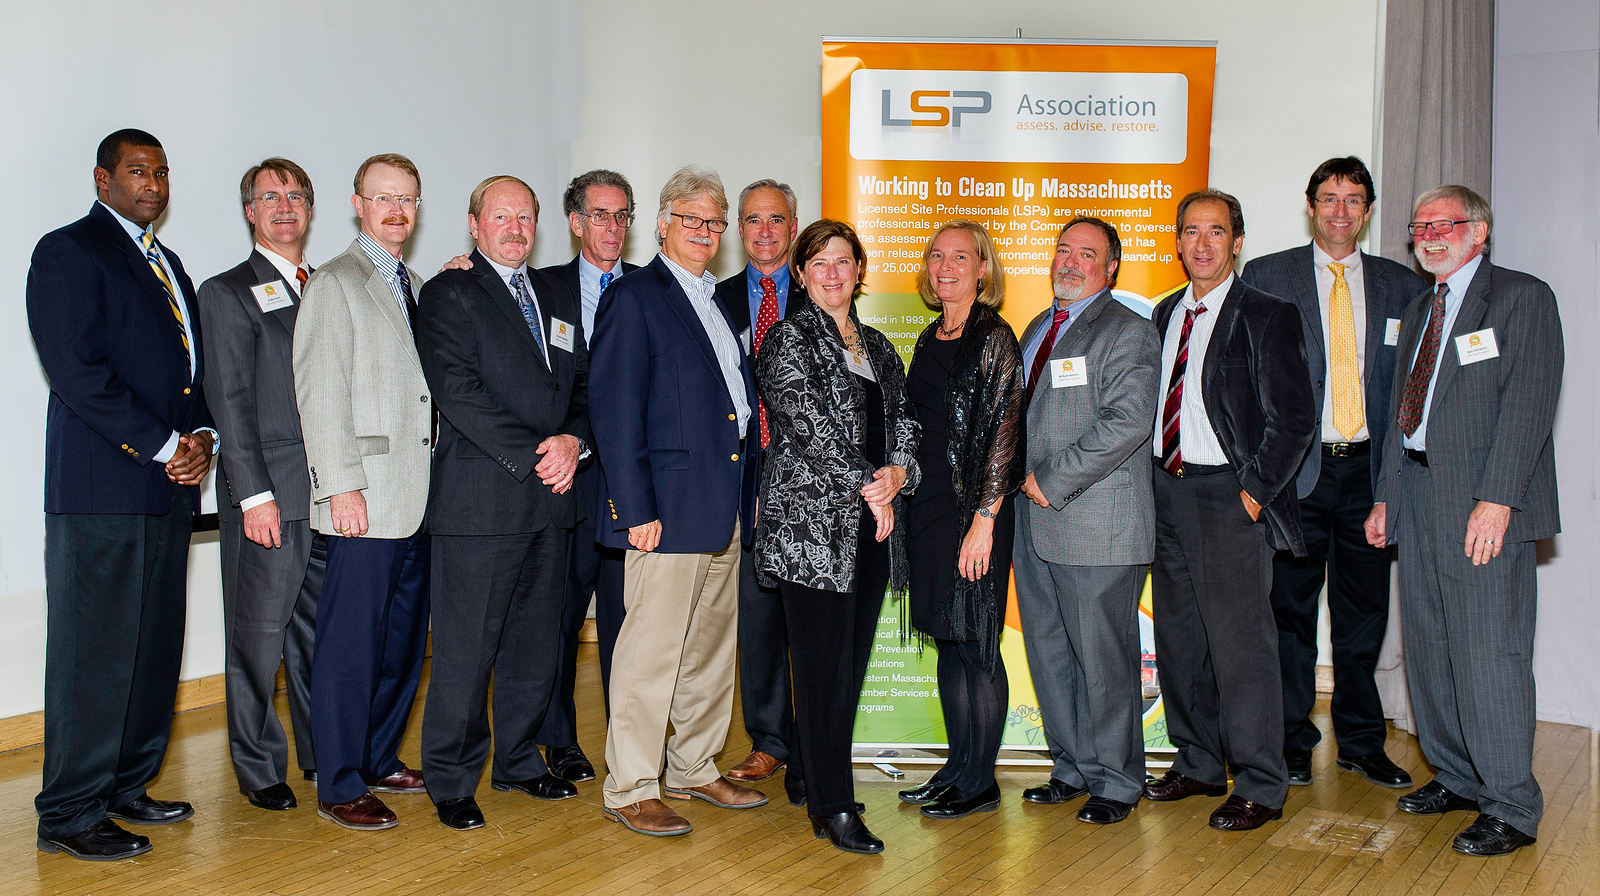 LSPA Past Presidents 2013 (left to right):  Cole Worthy, Andy Irwin, Jim Young, Chuck Myette, Larry Feldman, Elliot Steinberg, T.J. Stevenson, Dot McGlincy, Carol Bois, Bill Betters, Carl Shapiro, Duff Collins, Wes Stimpson